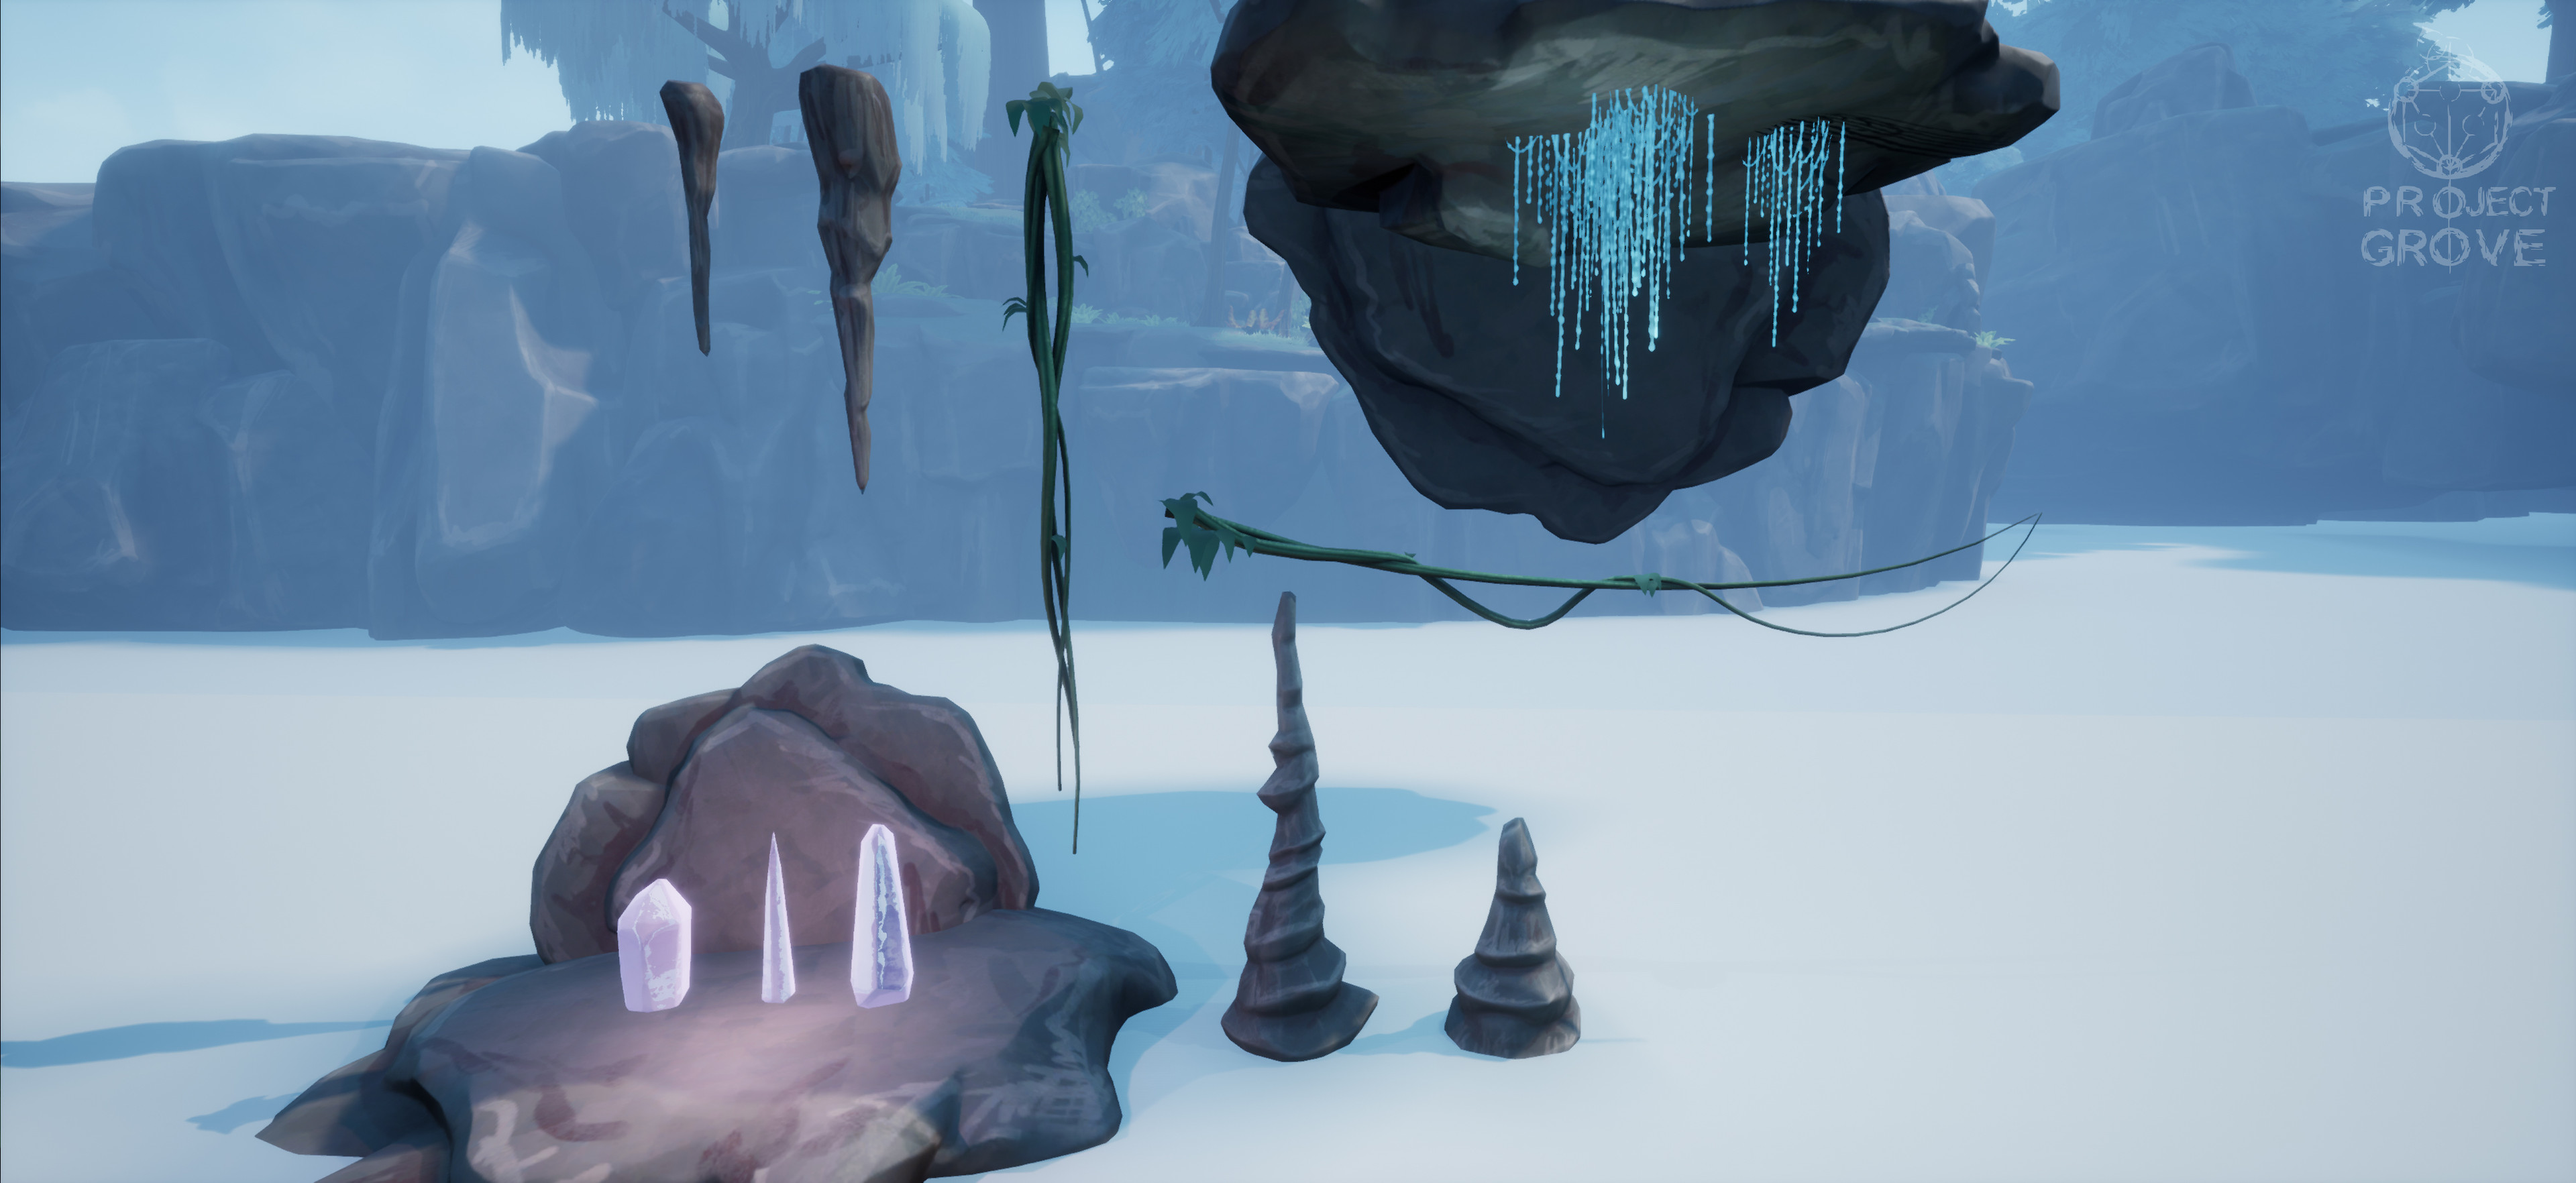 Some cave / scatter assets: stalactites and stalagmites, glowing crystals, vines and glow worms.